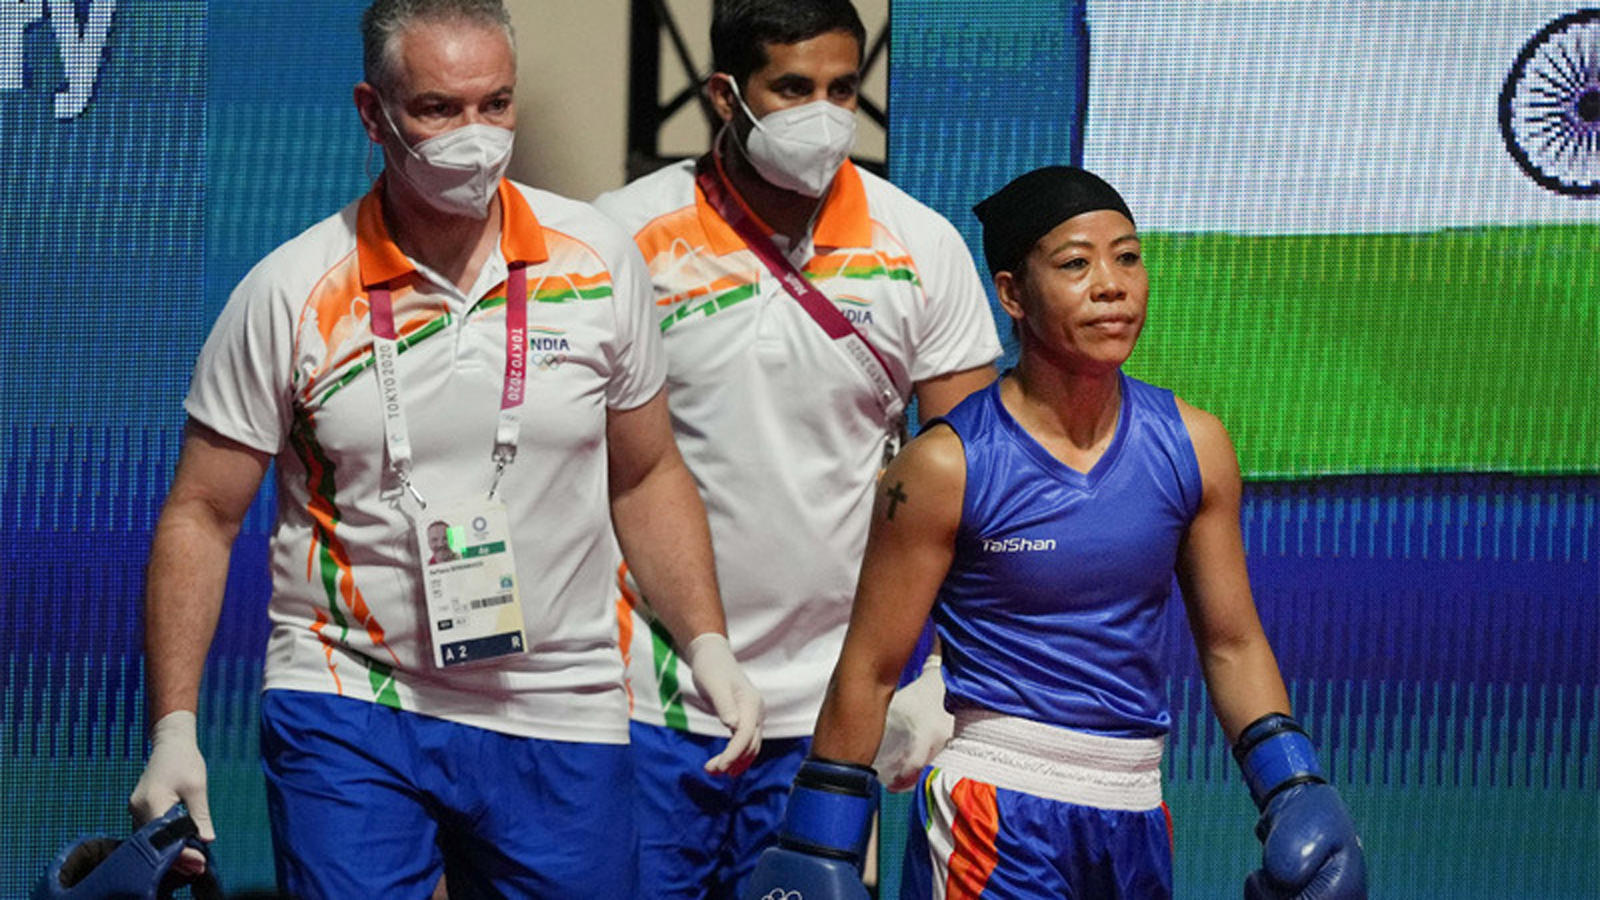 tokyo-olympics-mary-kom-slams-ioc-suspects-foul-play-after-her-loss